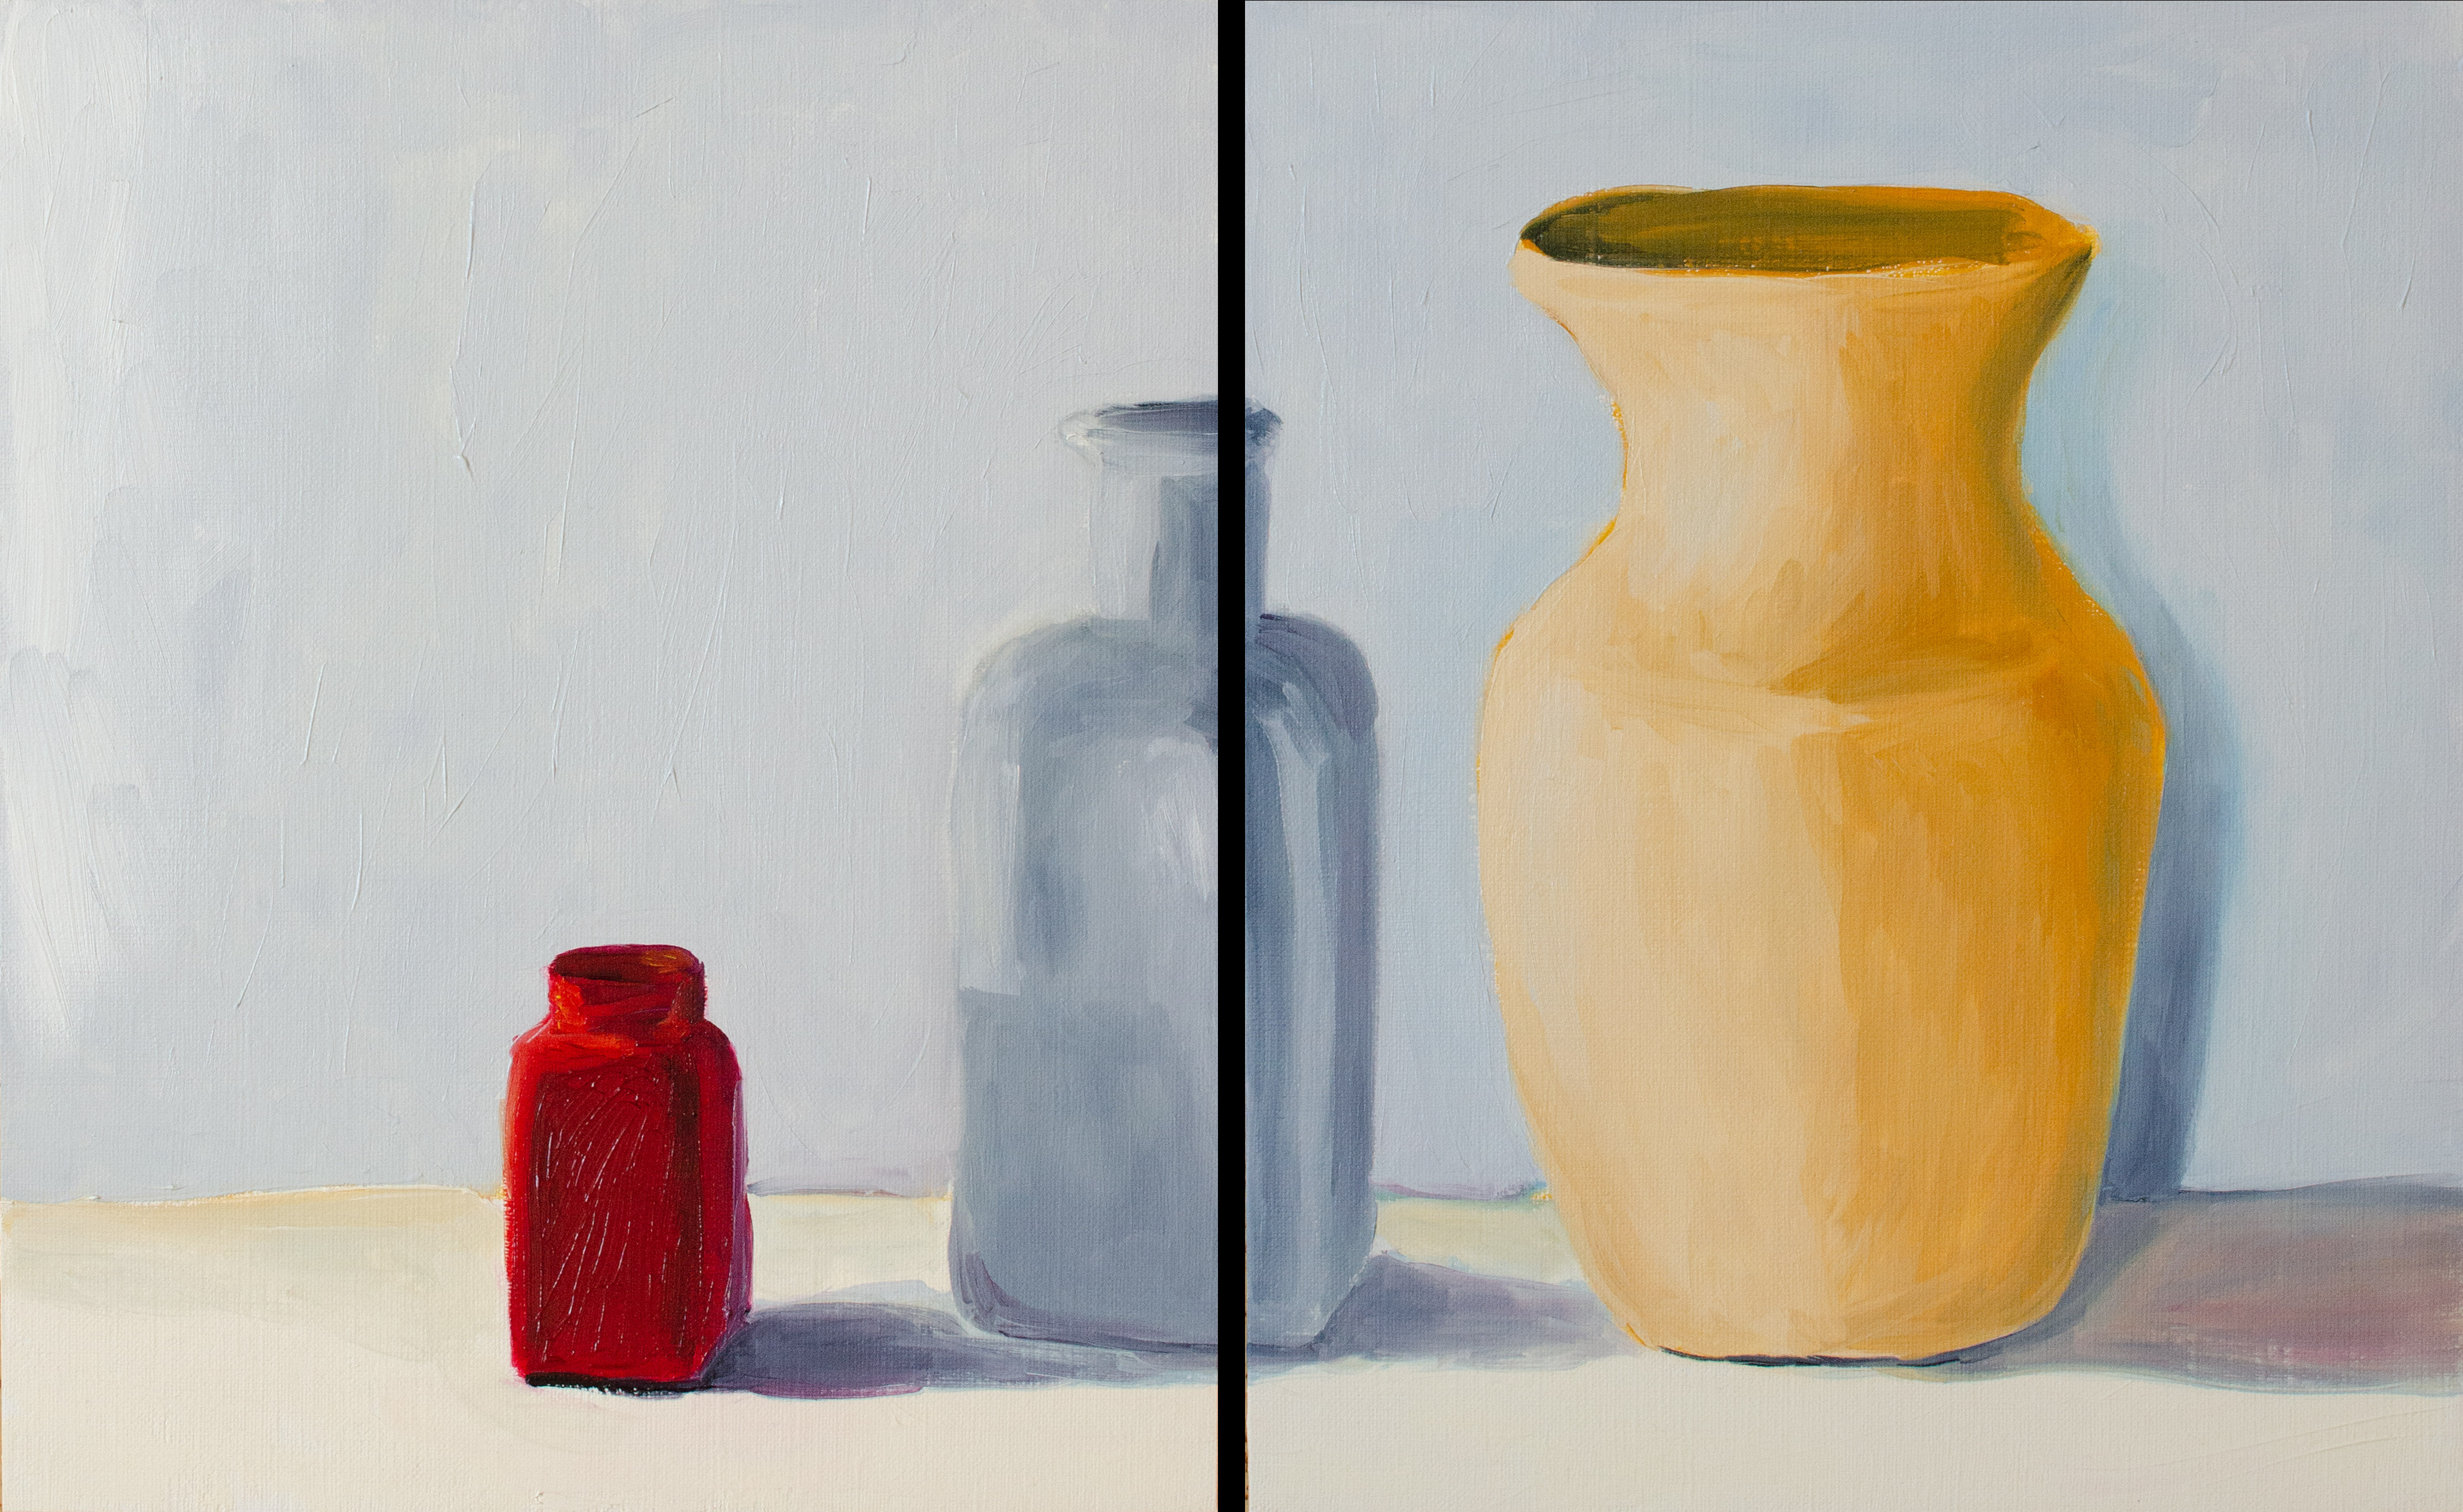 "Red Bottle, Sep 30, 2018, Oil on Canvas Board, 2 pcs, each 8"" X 10"""